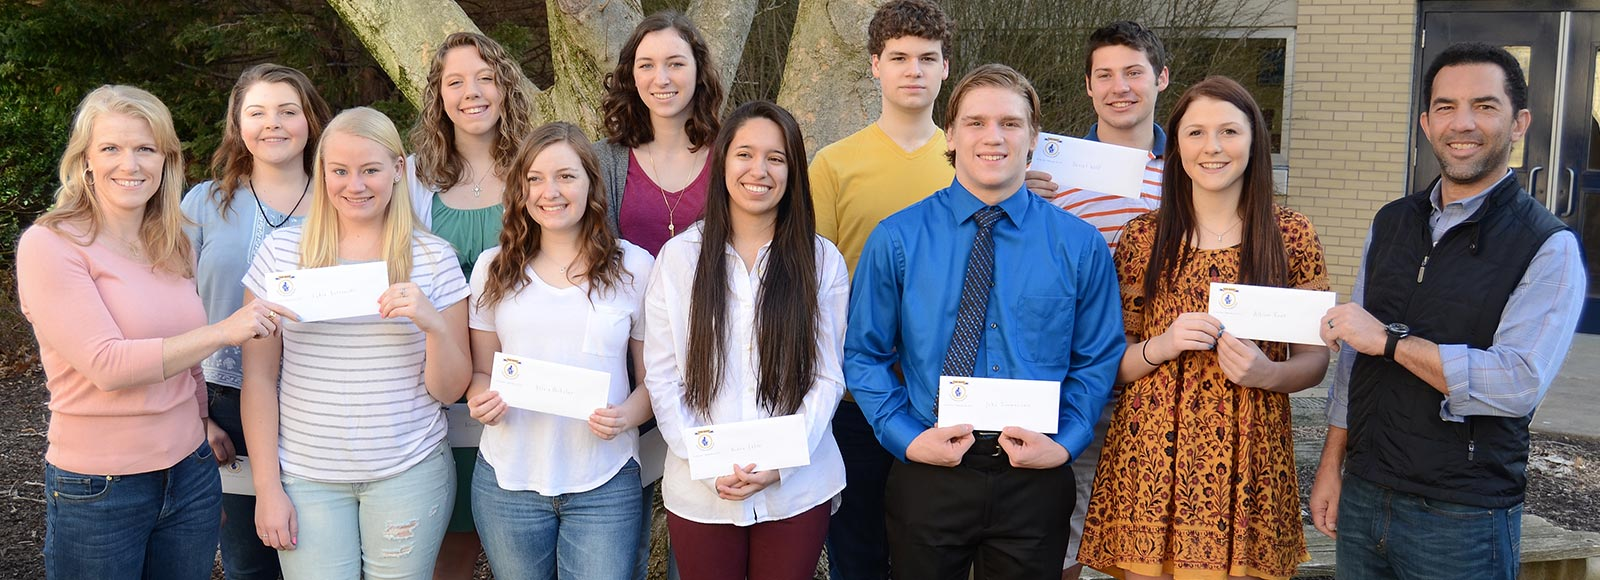 Graduates get a $60,000 assist from PMEF scholarships